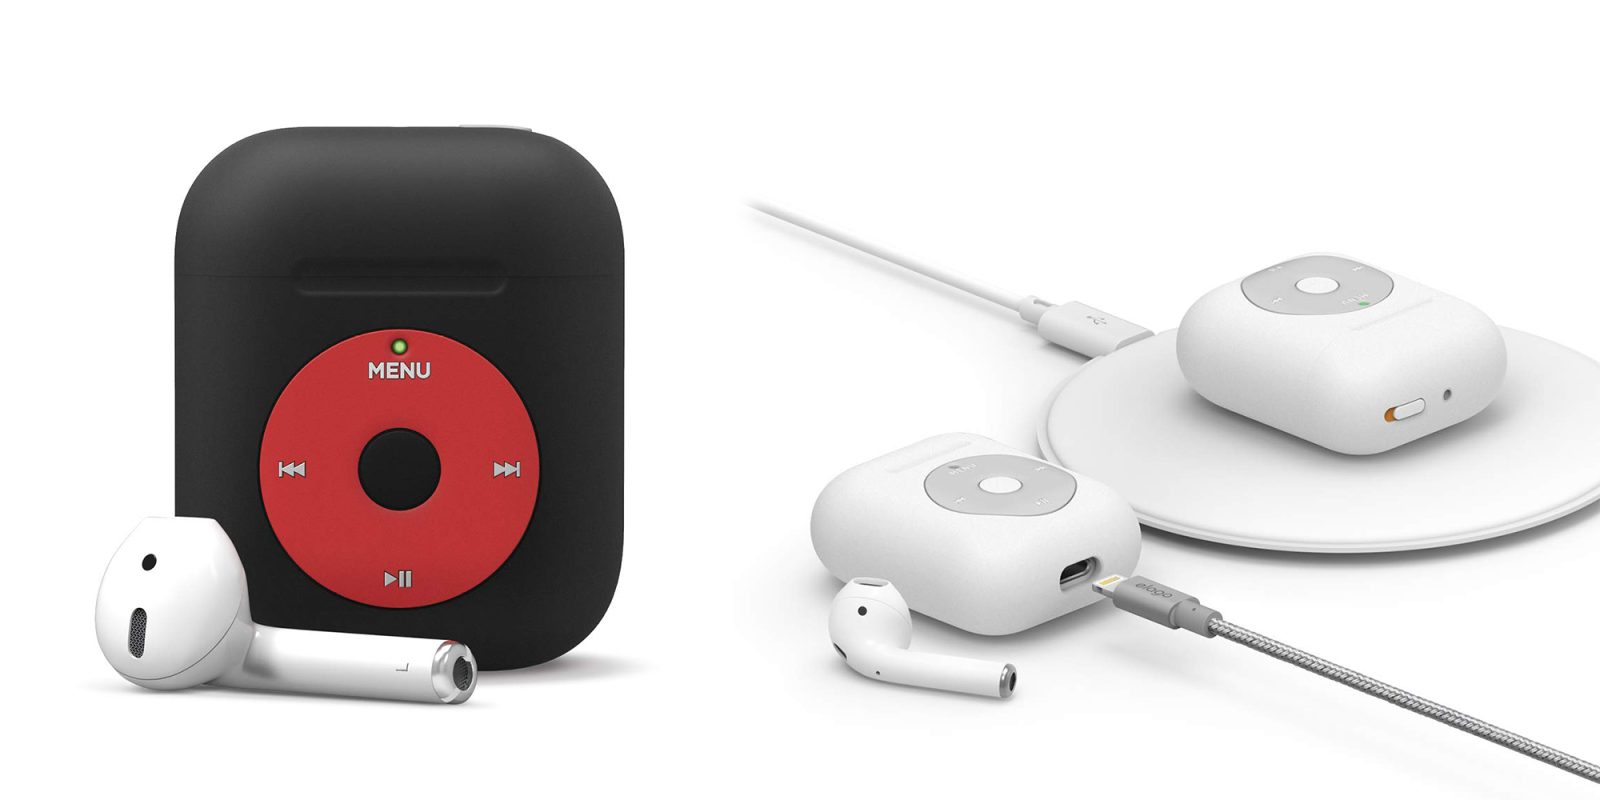 elago's new AirPods case looks like a retro iPod, makes a great holiday gift